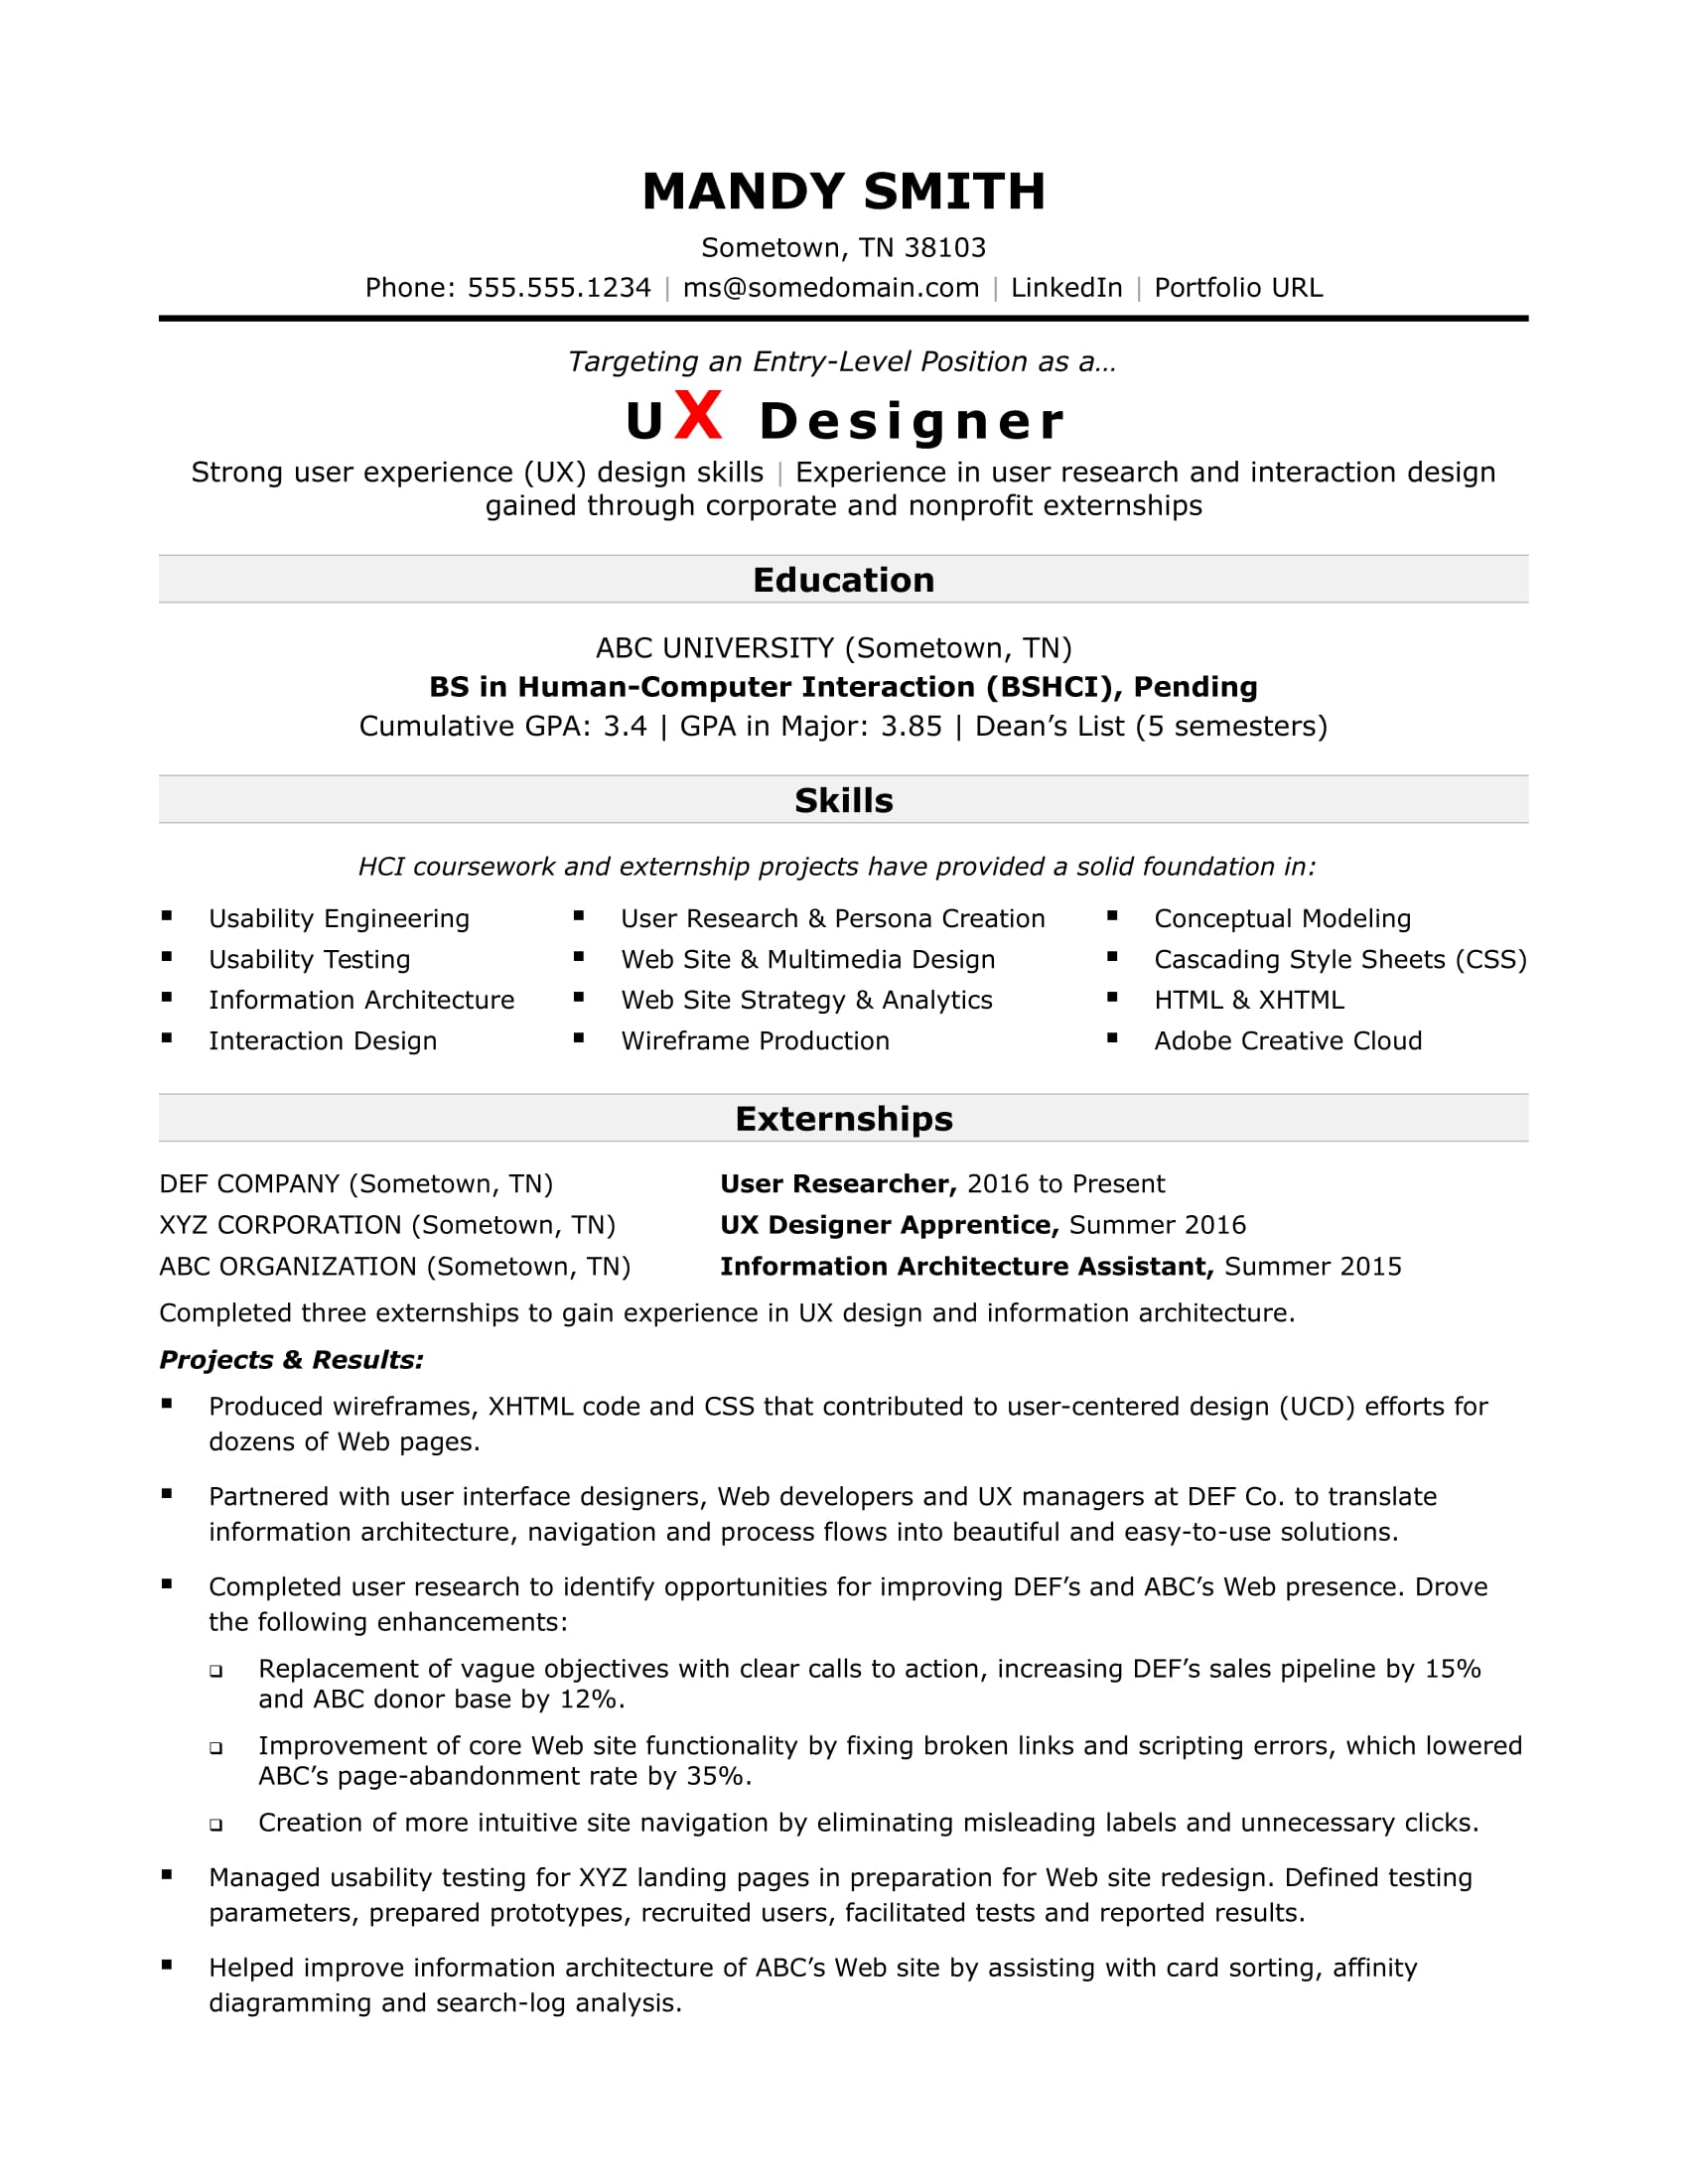 sample resume for an entry level ux designer - Ux Designer Resume